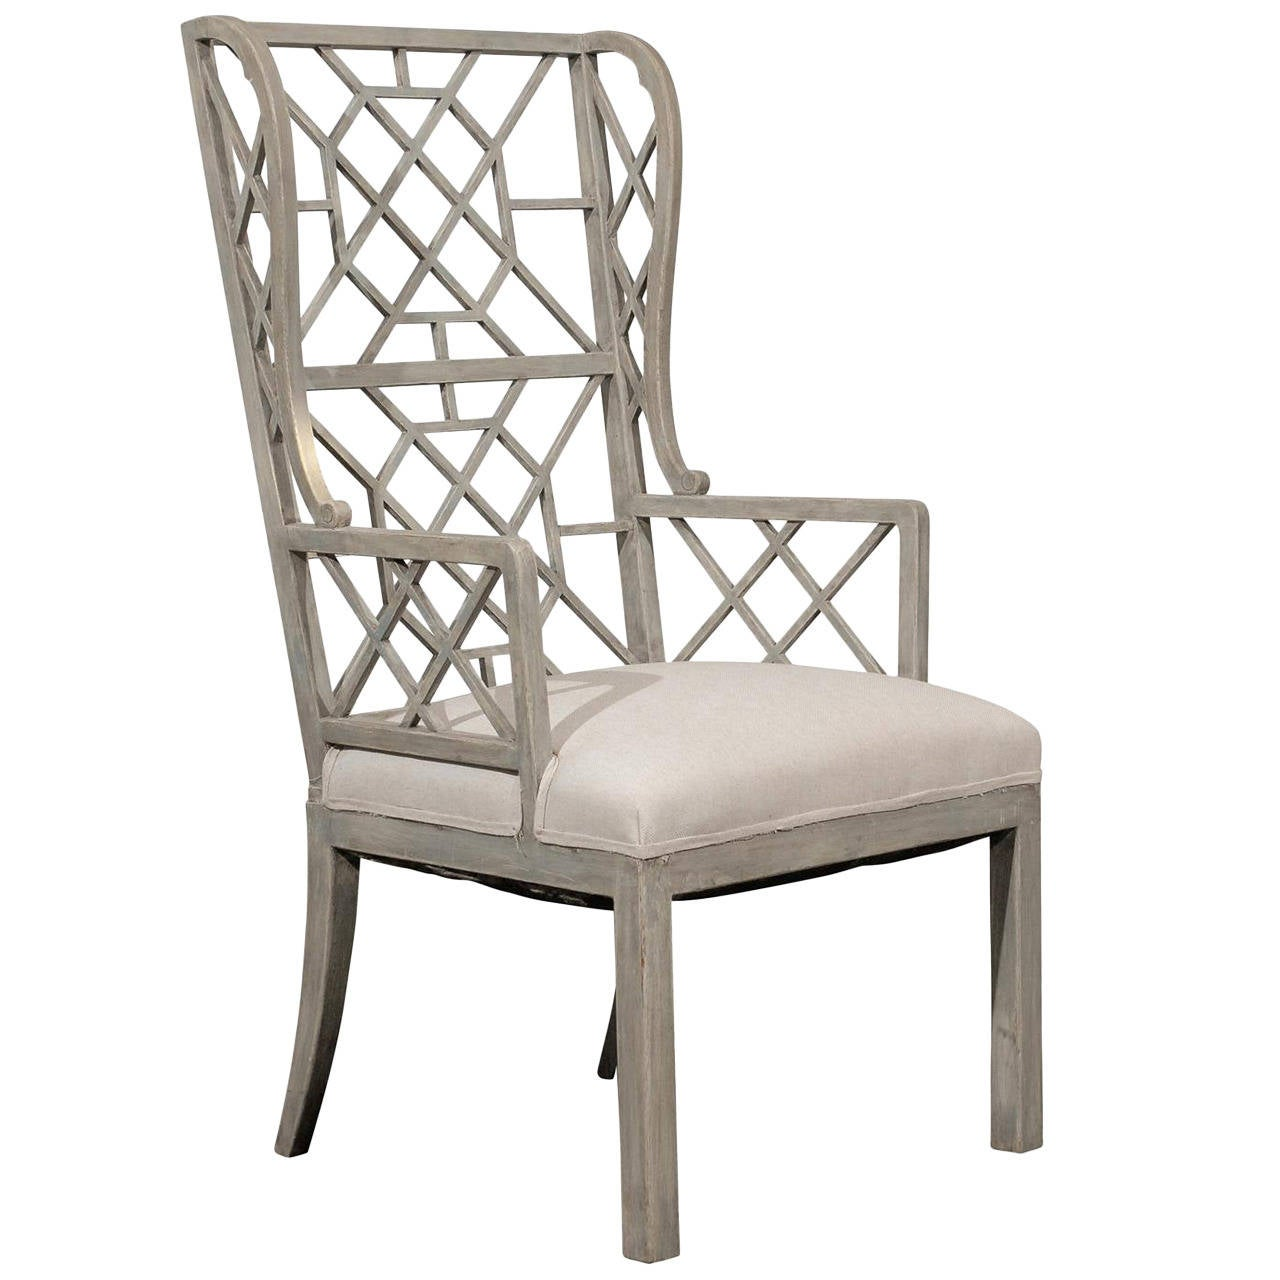 light grey chair real leather chairs chinese chippendale or blue painted wood high